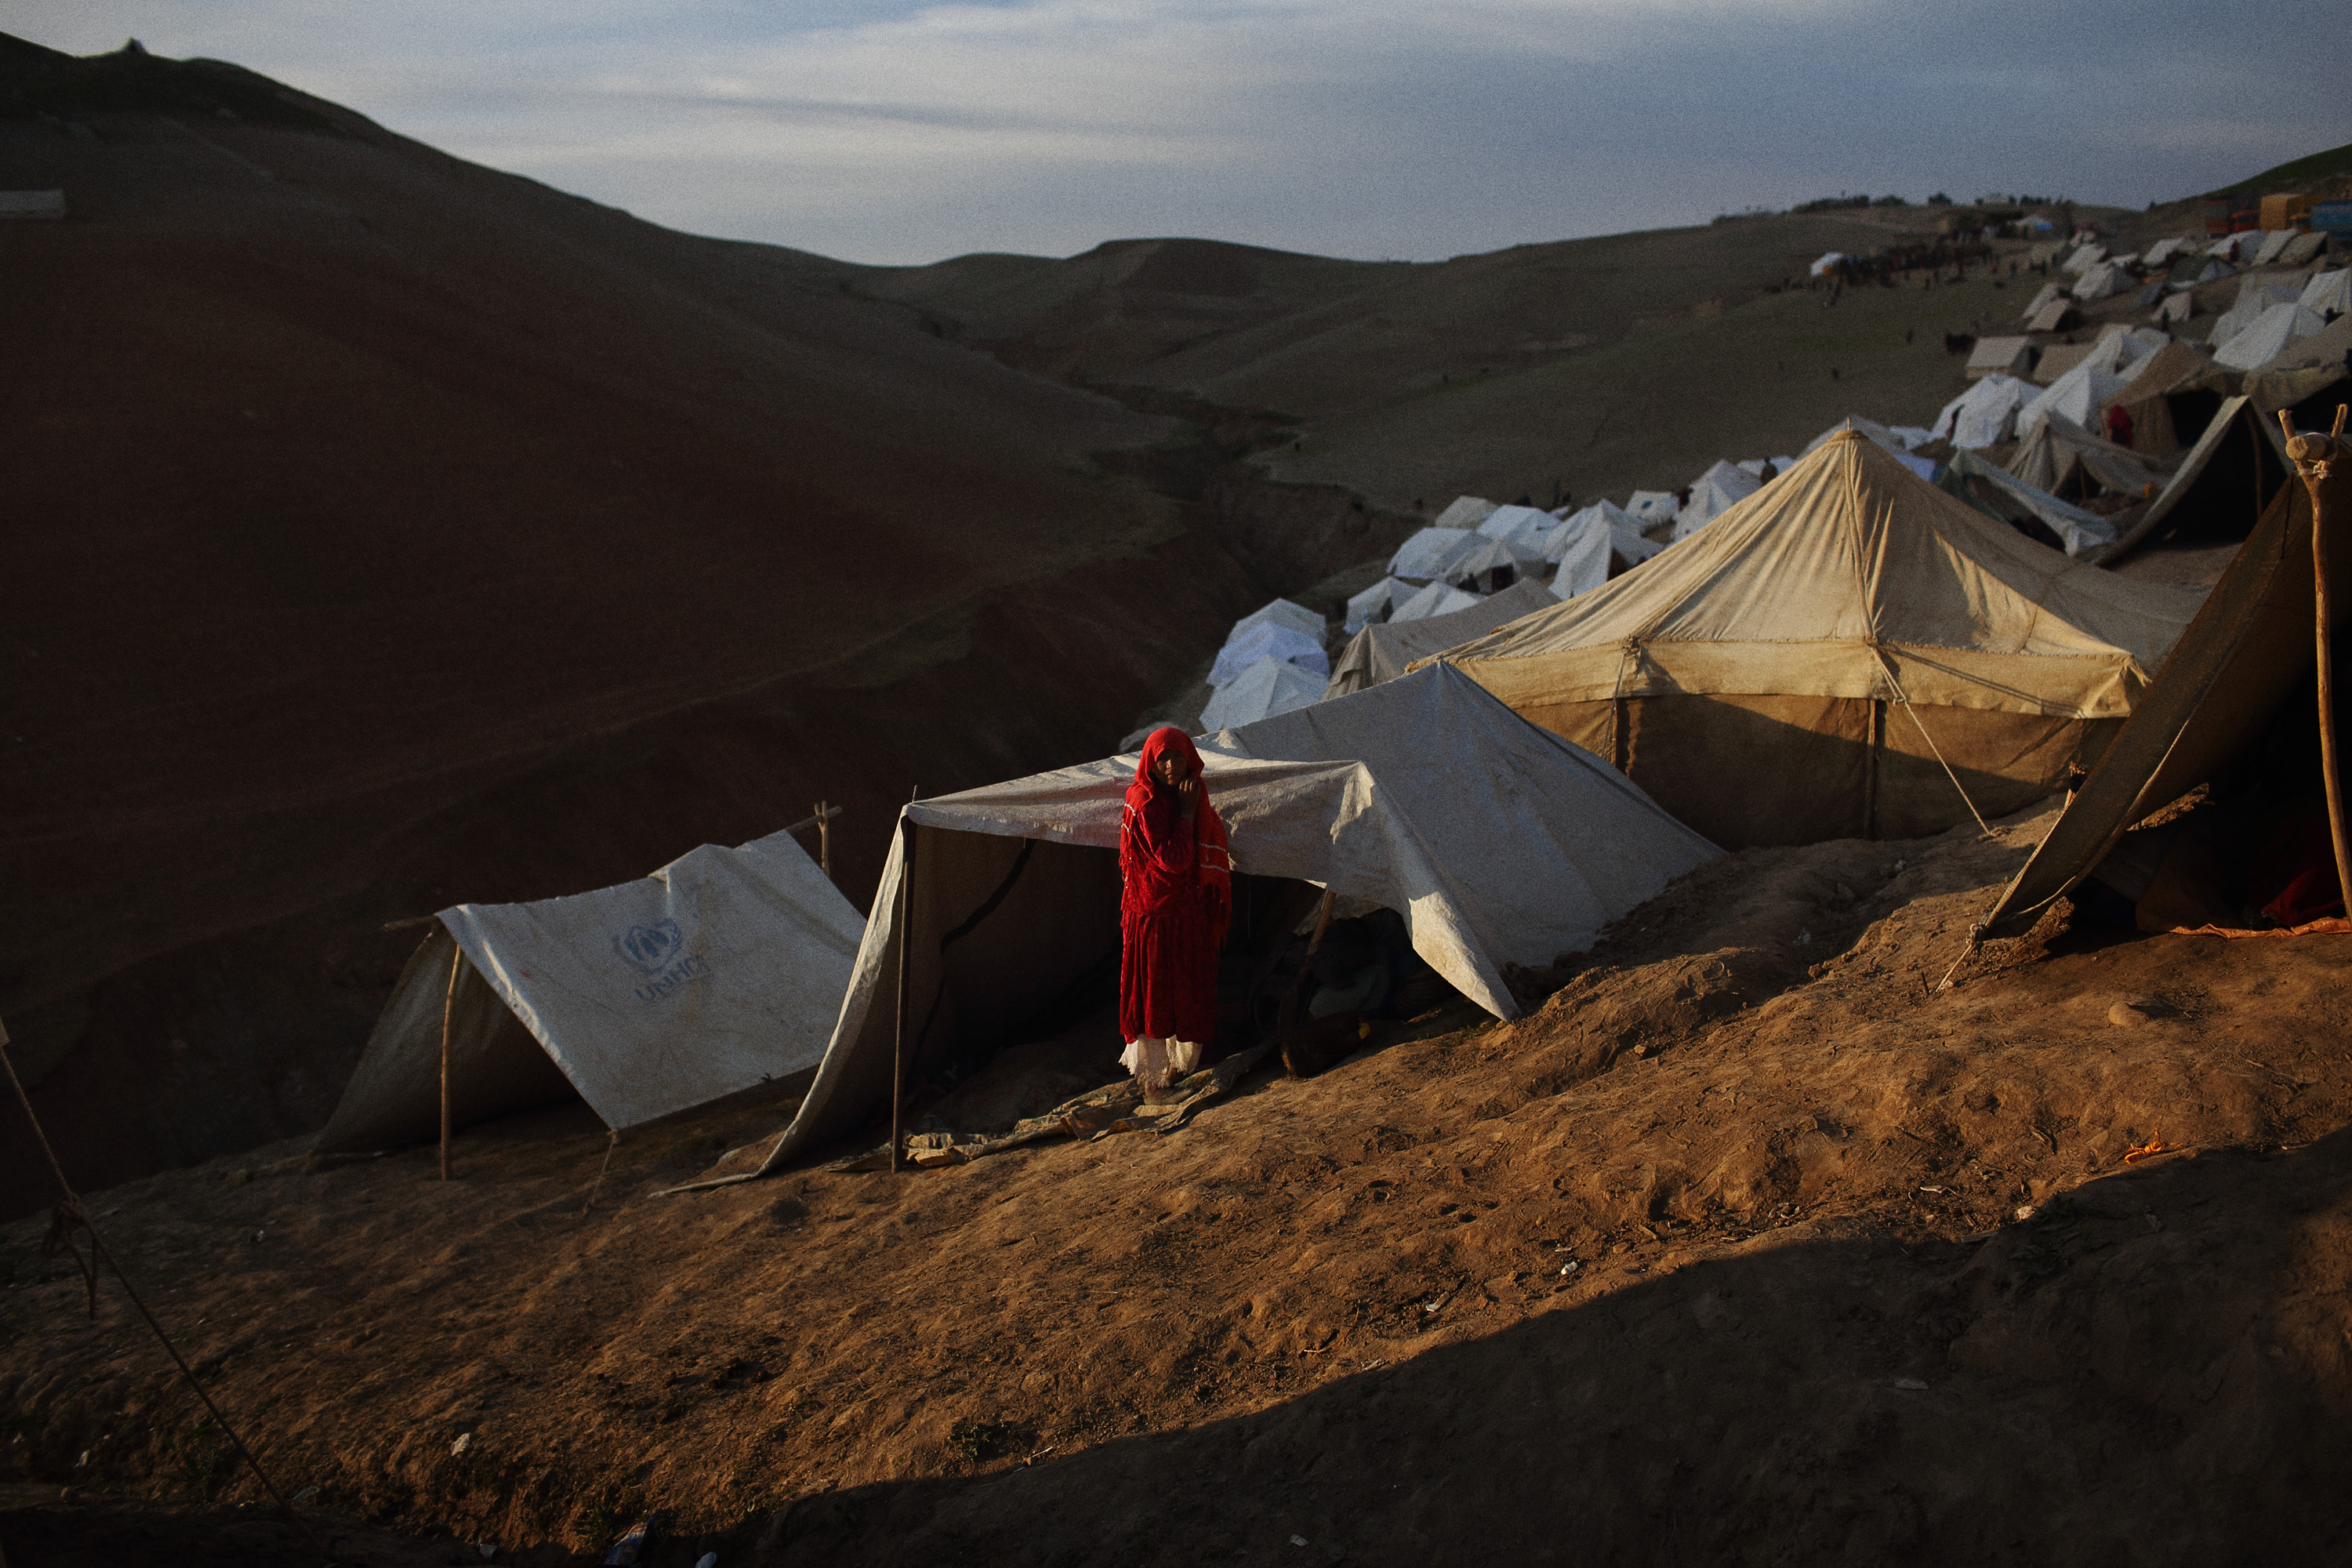 A woman by her tent on the side of a steep hill at the top of Abi Barik, May 6, 2014.